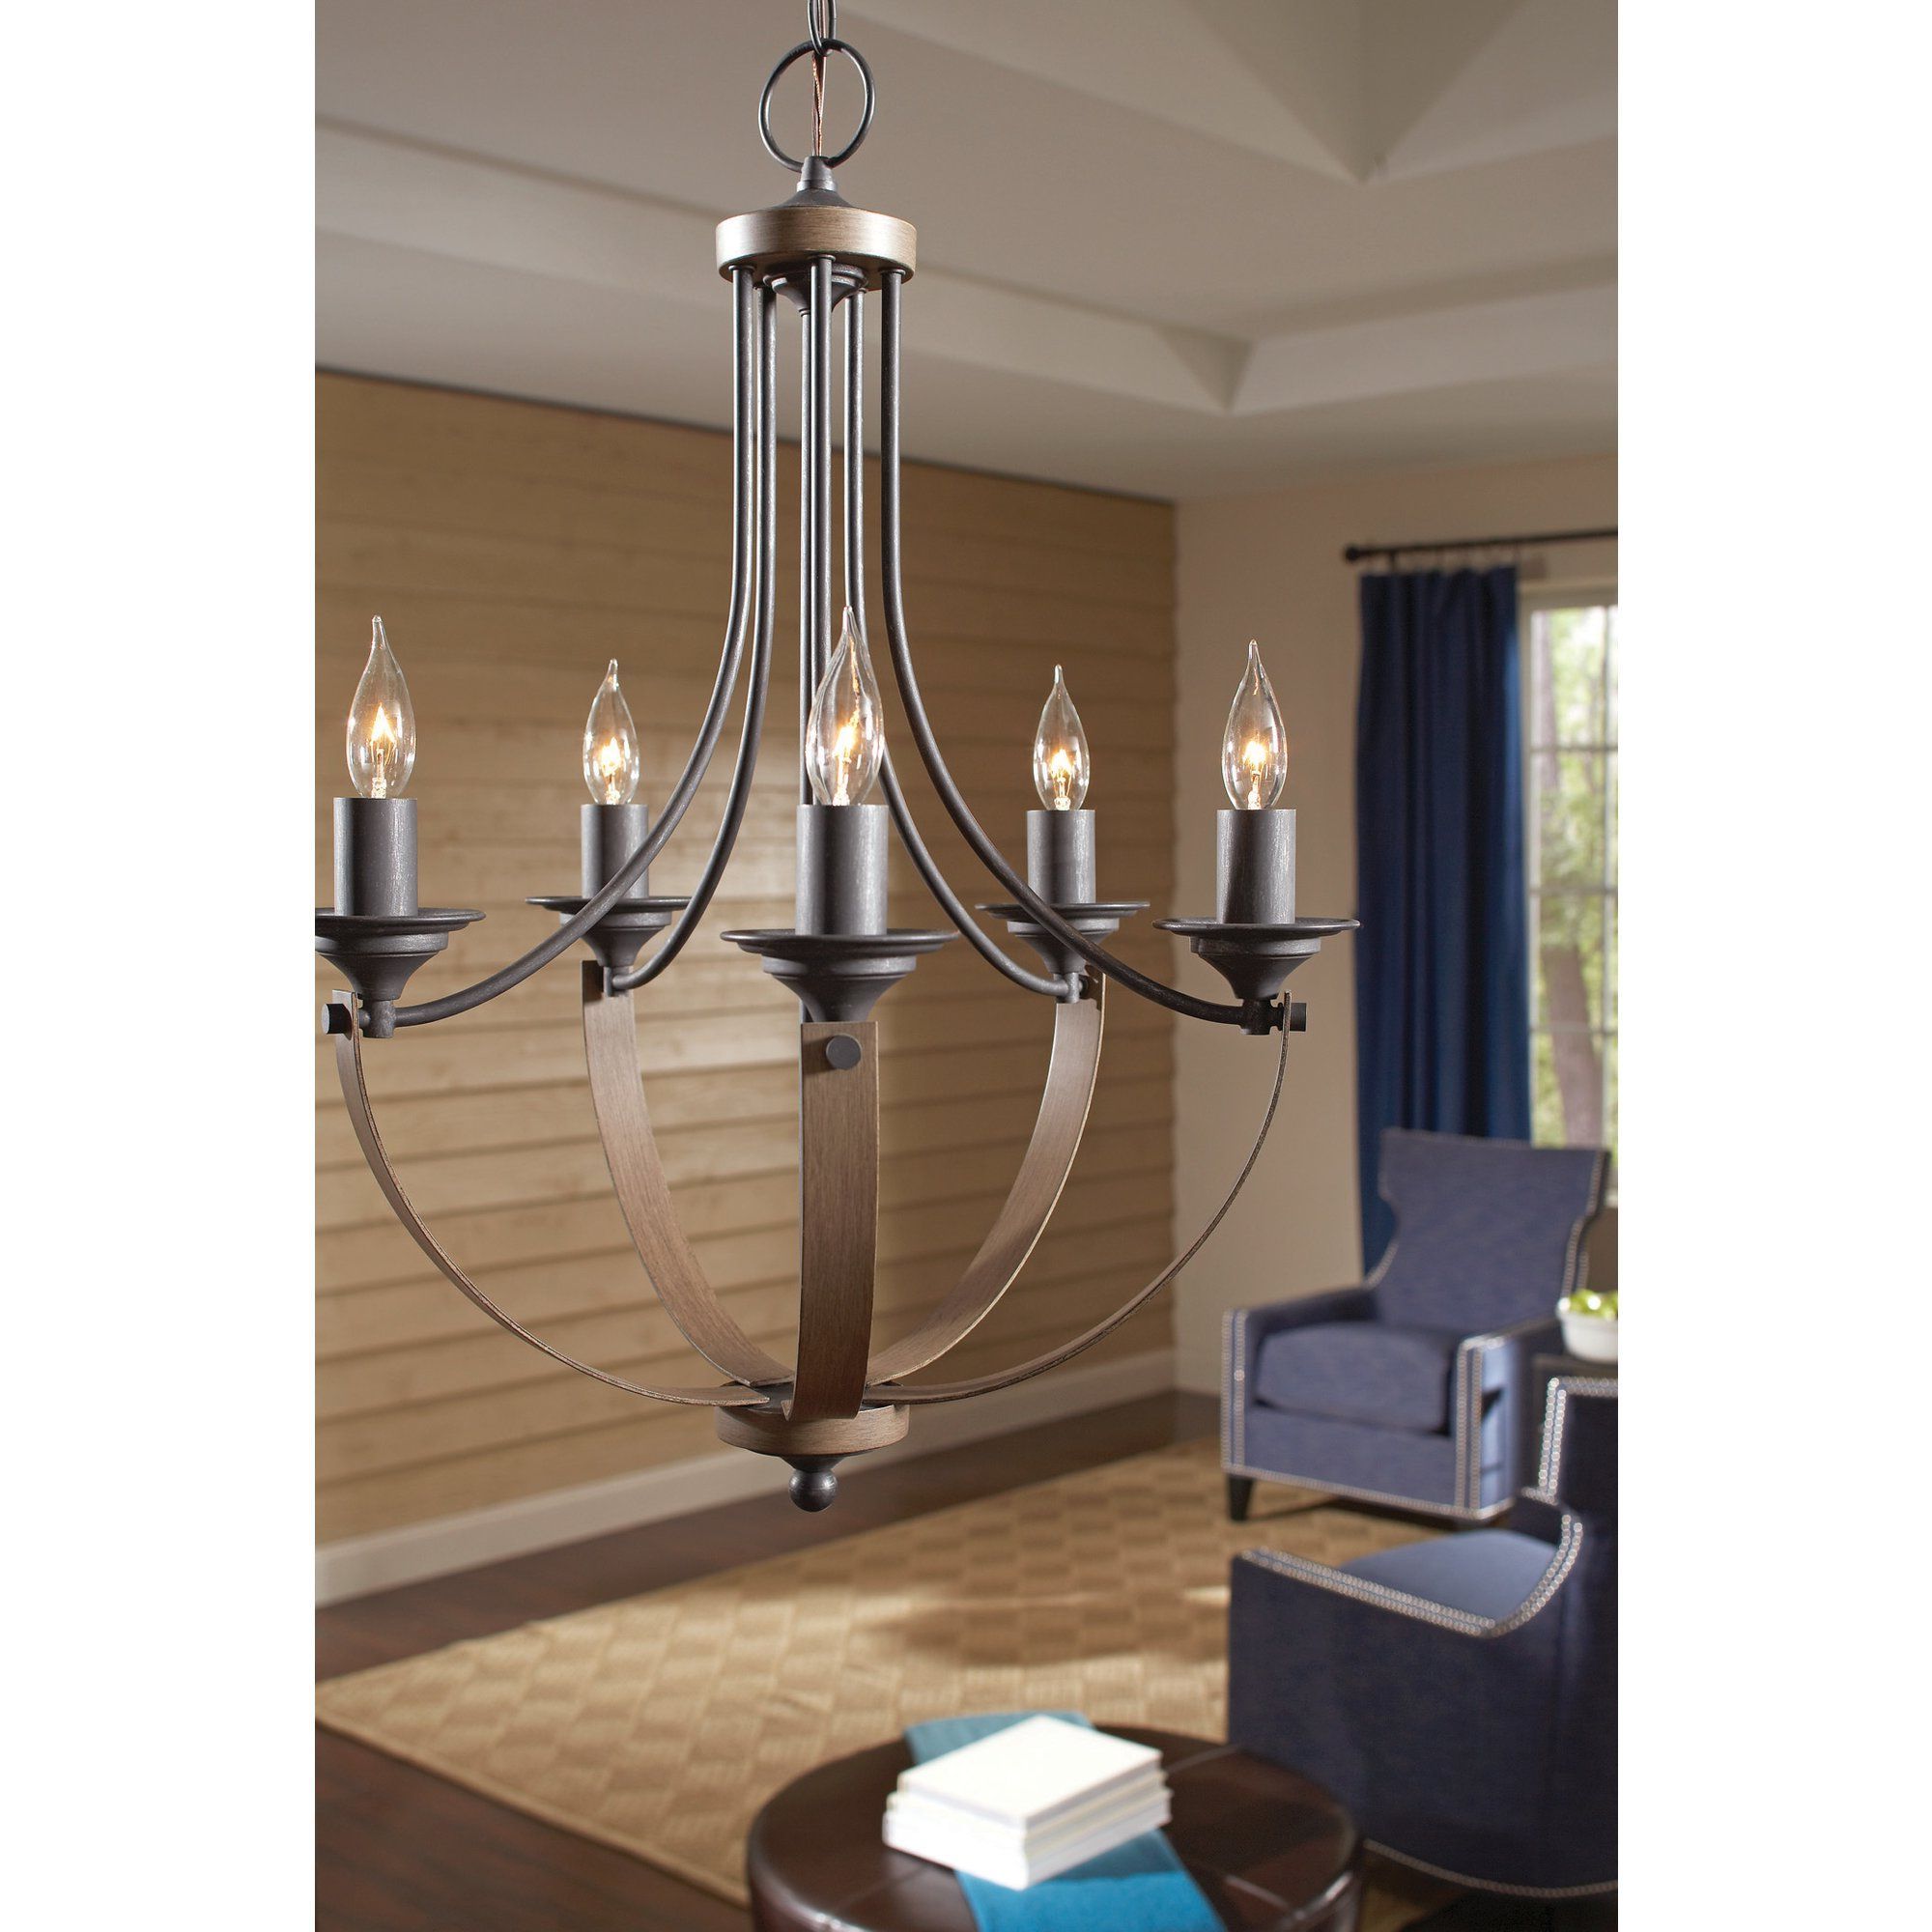 Preferred Armande Candle Style Chandeliers Intended For 25 Camilla 9 Light Candle Style Chandelier – Divineducation (View 20 of 25)